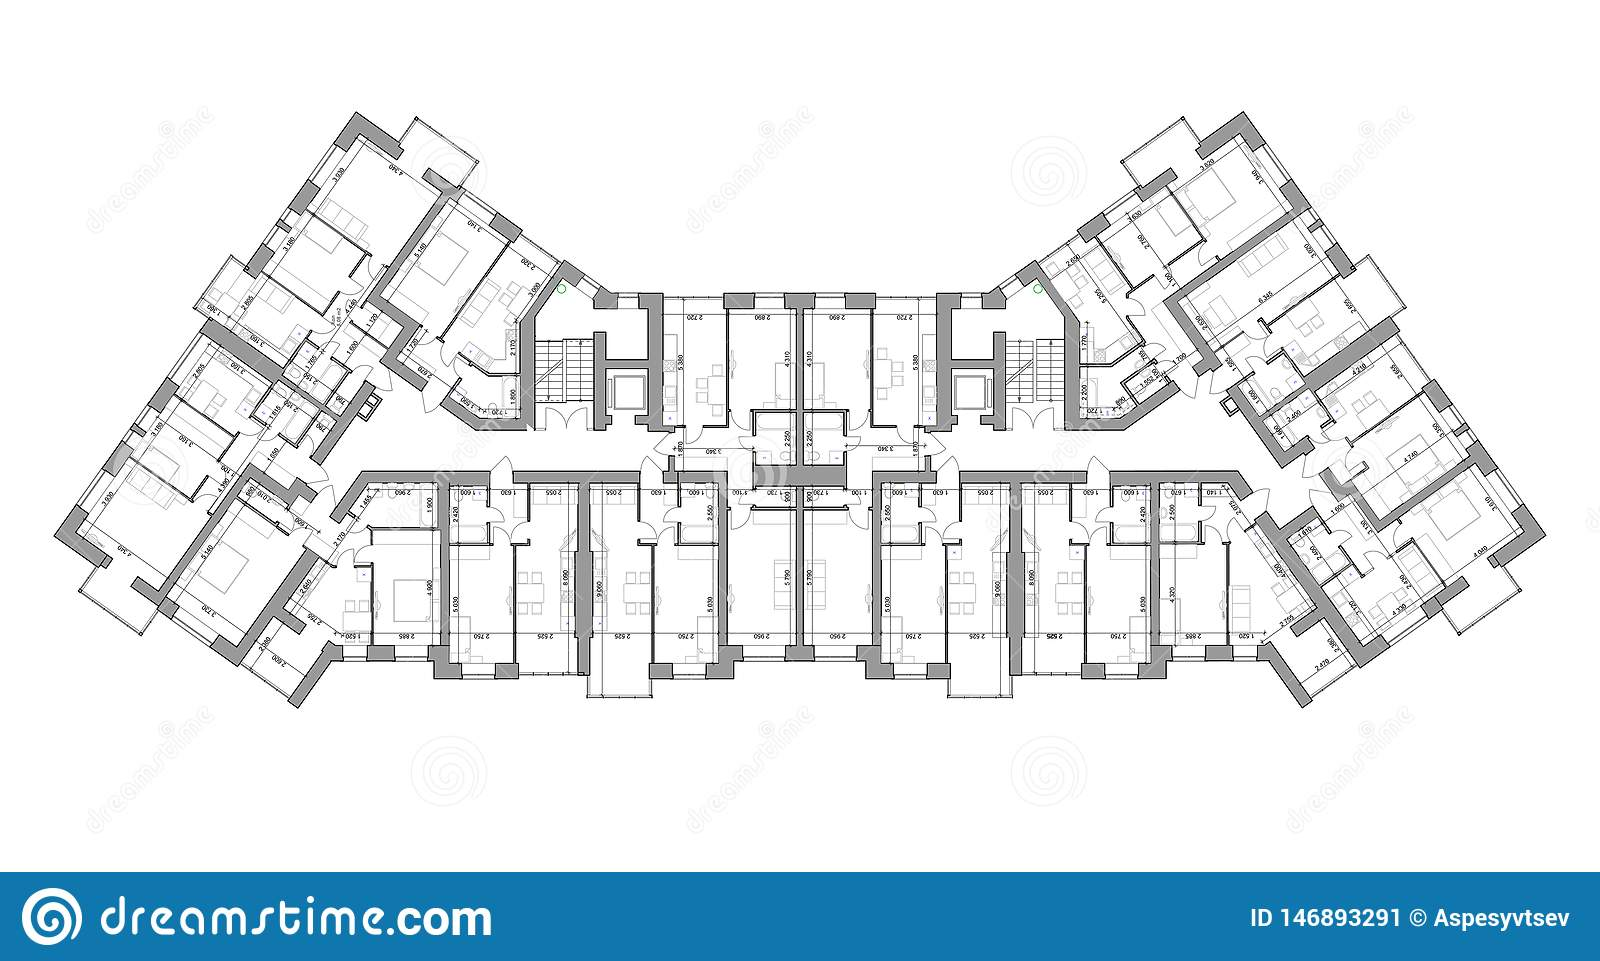 Detailed architectural floor plan, appartment layout, blueprint. Vector